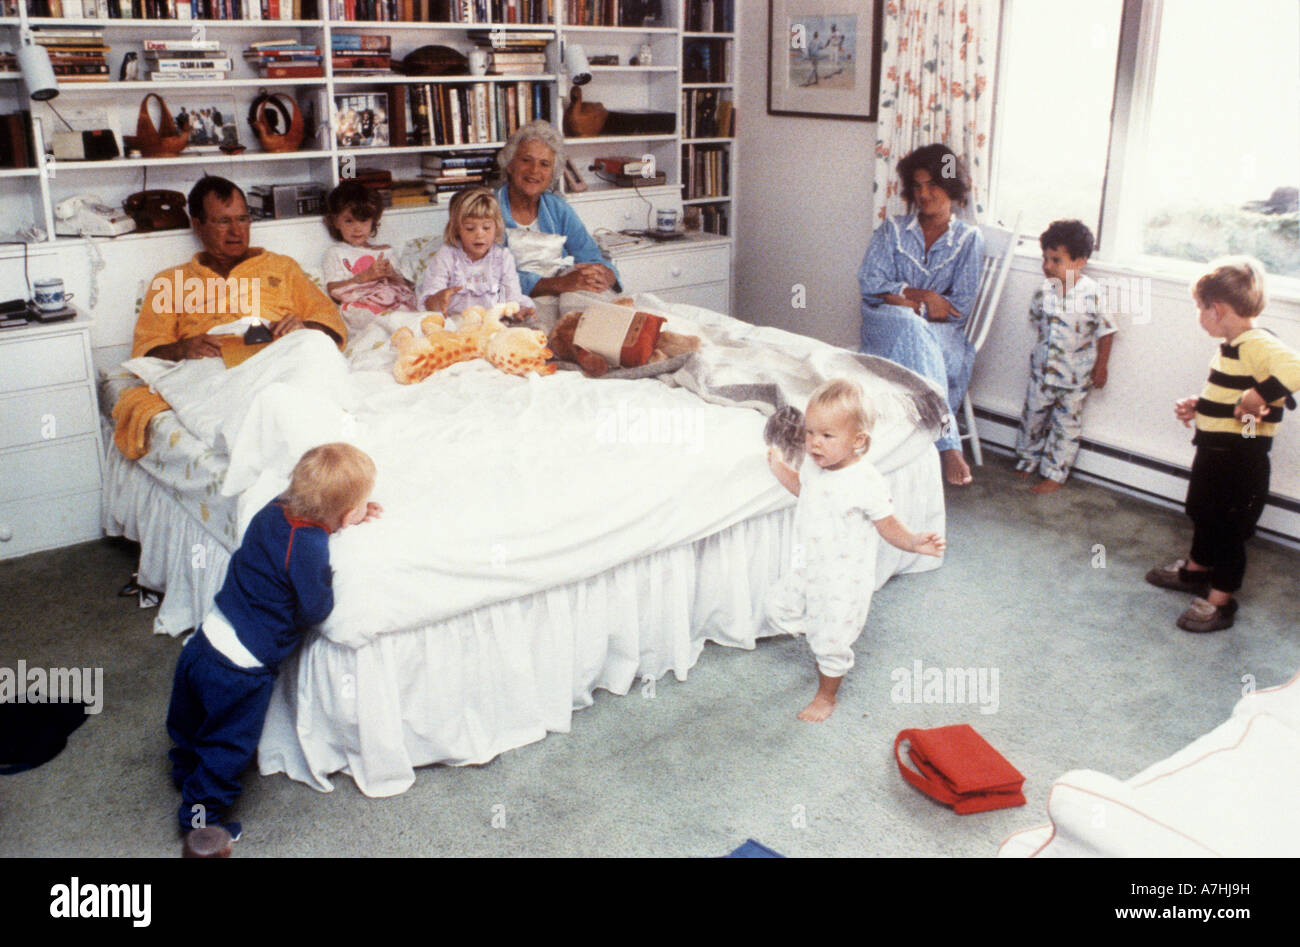 GEORGE BUSH and wife Barbara with their children while President of the USA - Stock Image